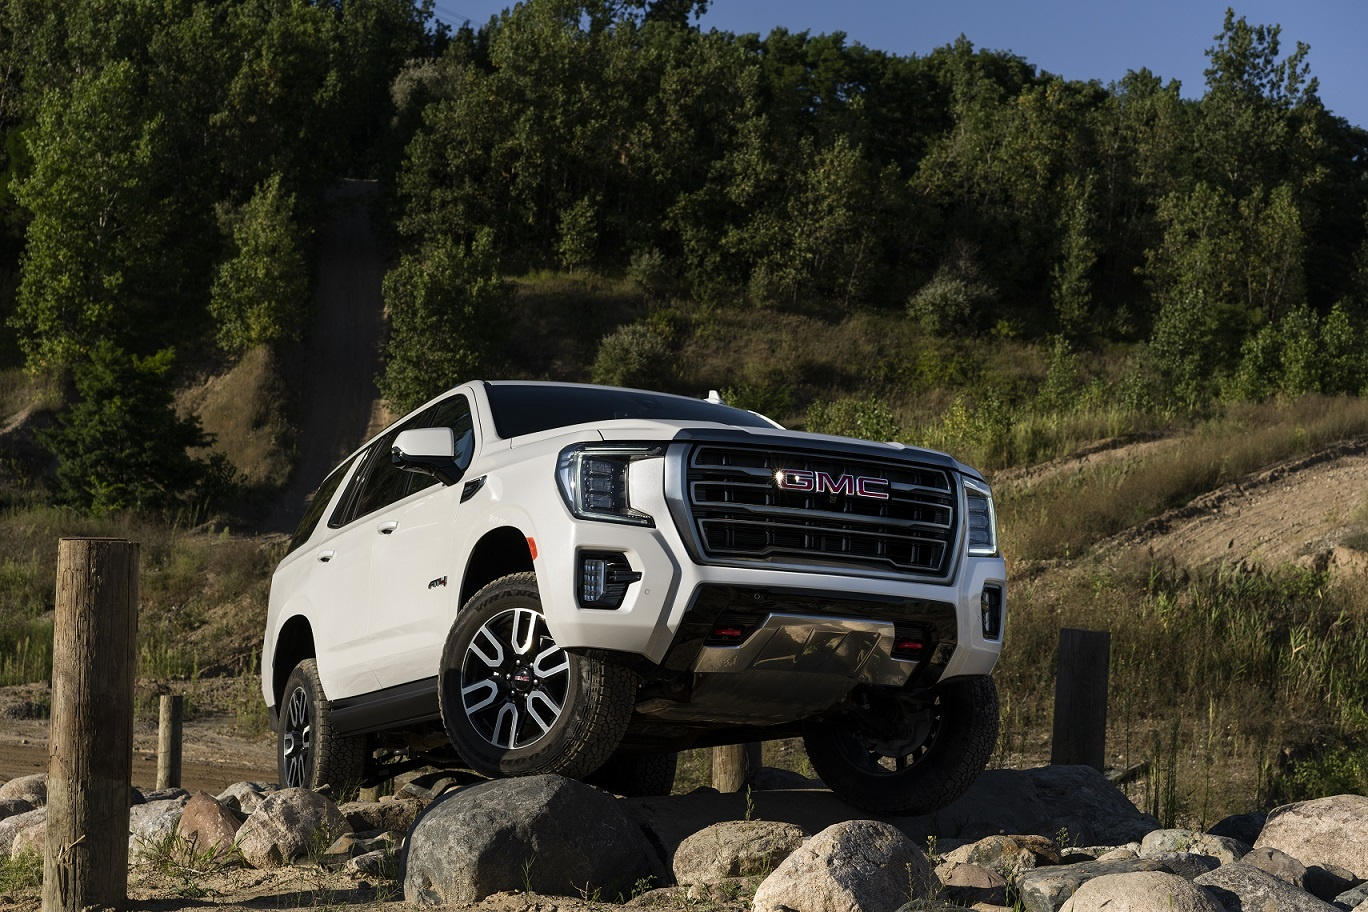 Gmc S Flagship Suv The All New 2021 Yukon Now On Sale In The Middle East Tires Parts News